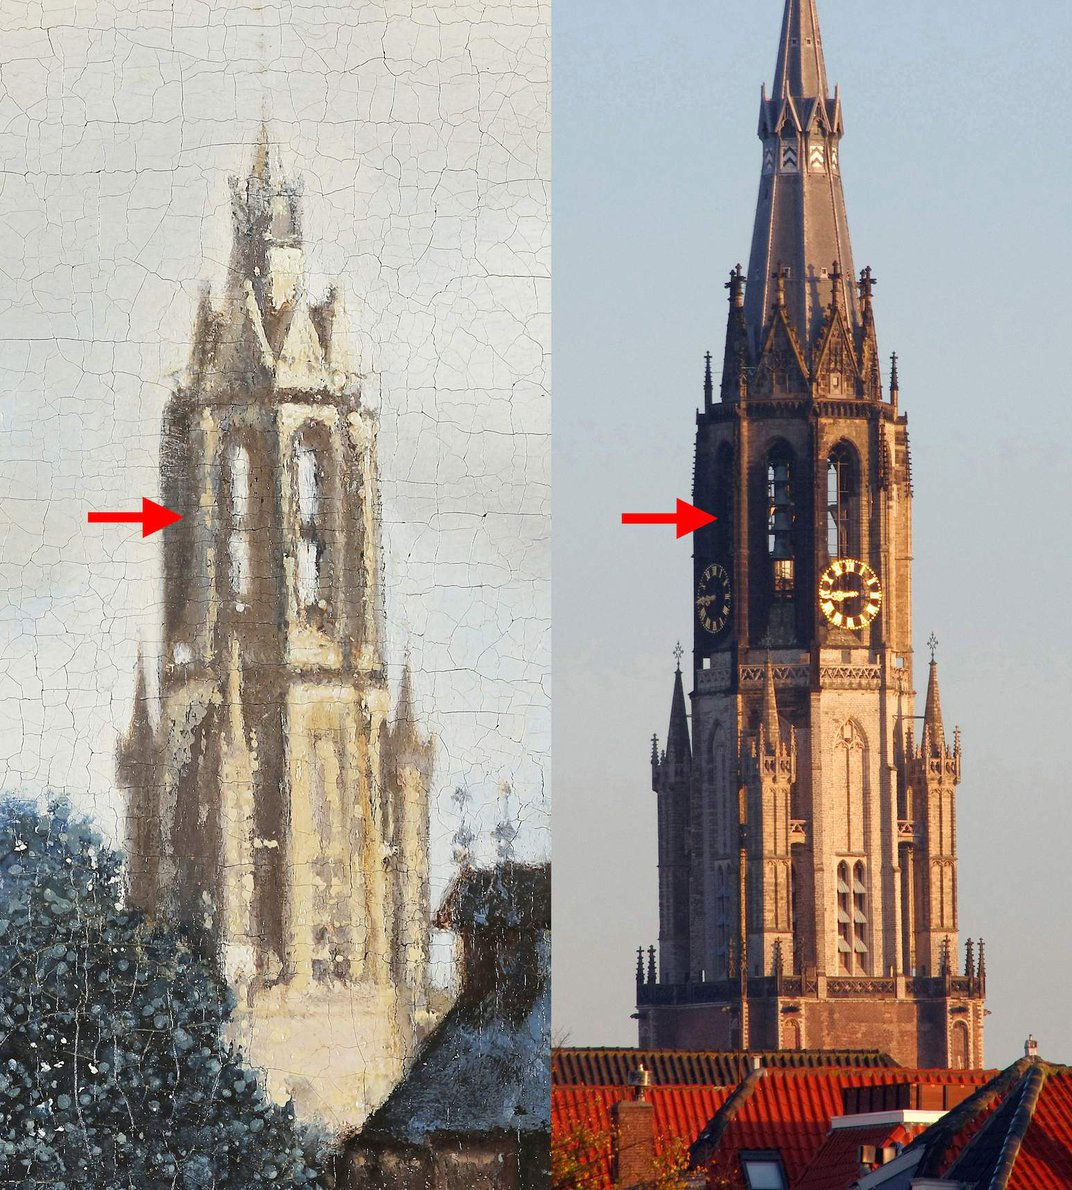 Astronomy Offers Fresh Look at Vermeer's 'View of Delft'